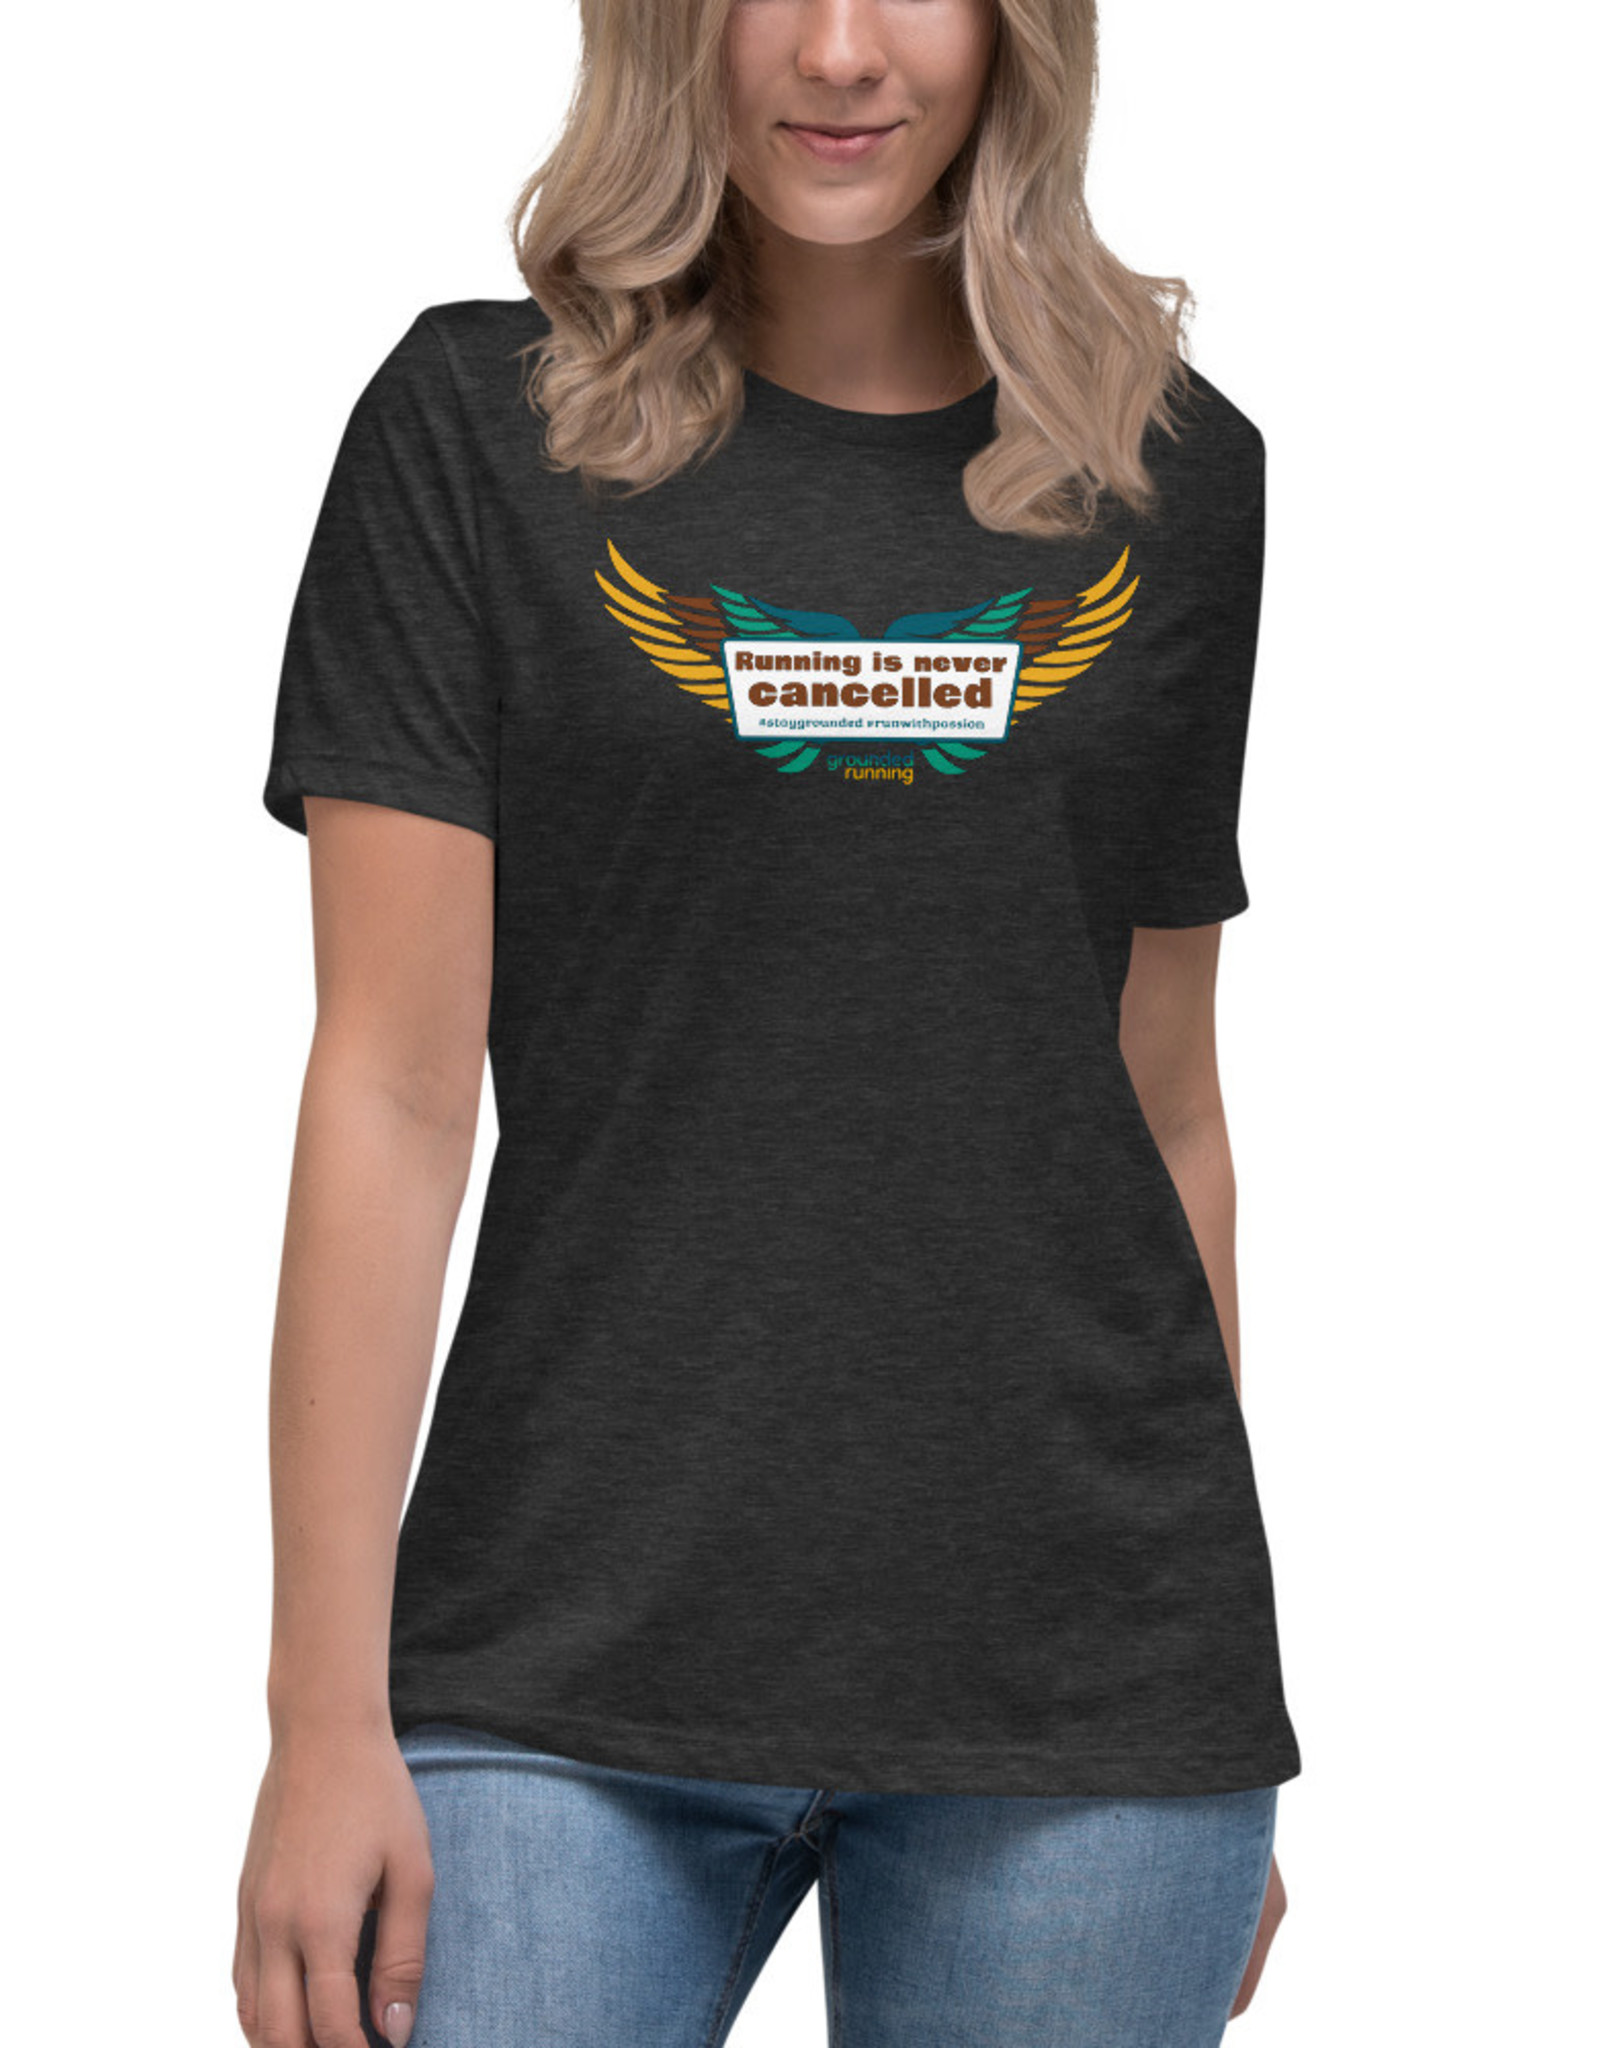 Grounded Running Running Is Never Cancelled: Women's Relaxed T-Shirt